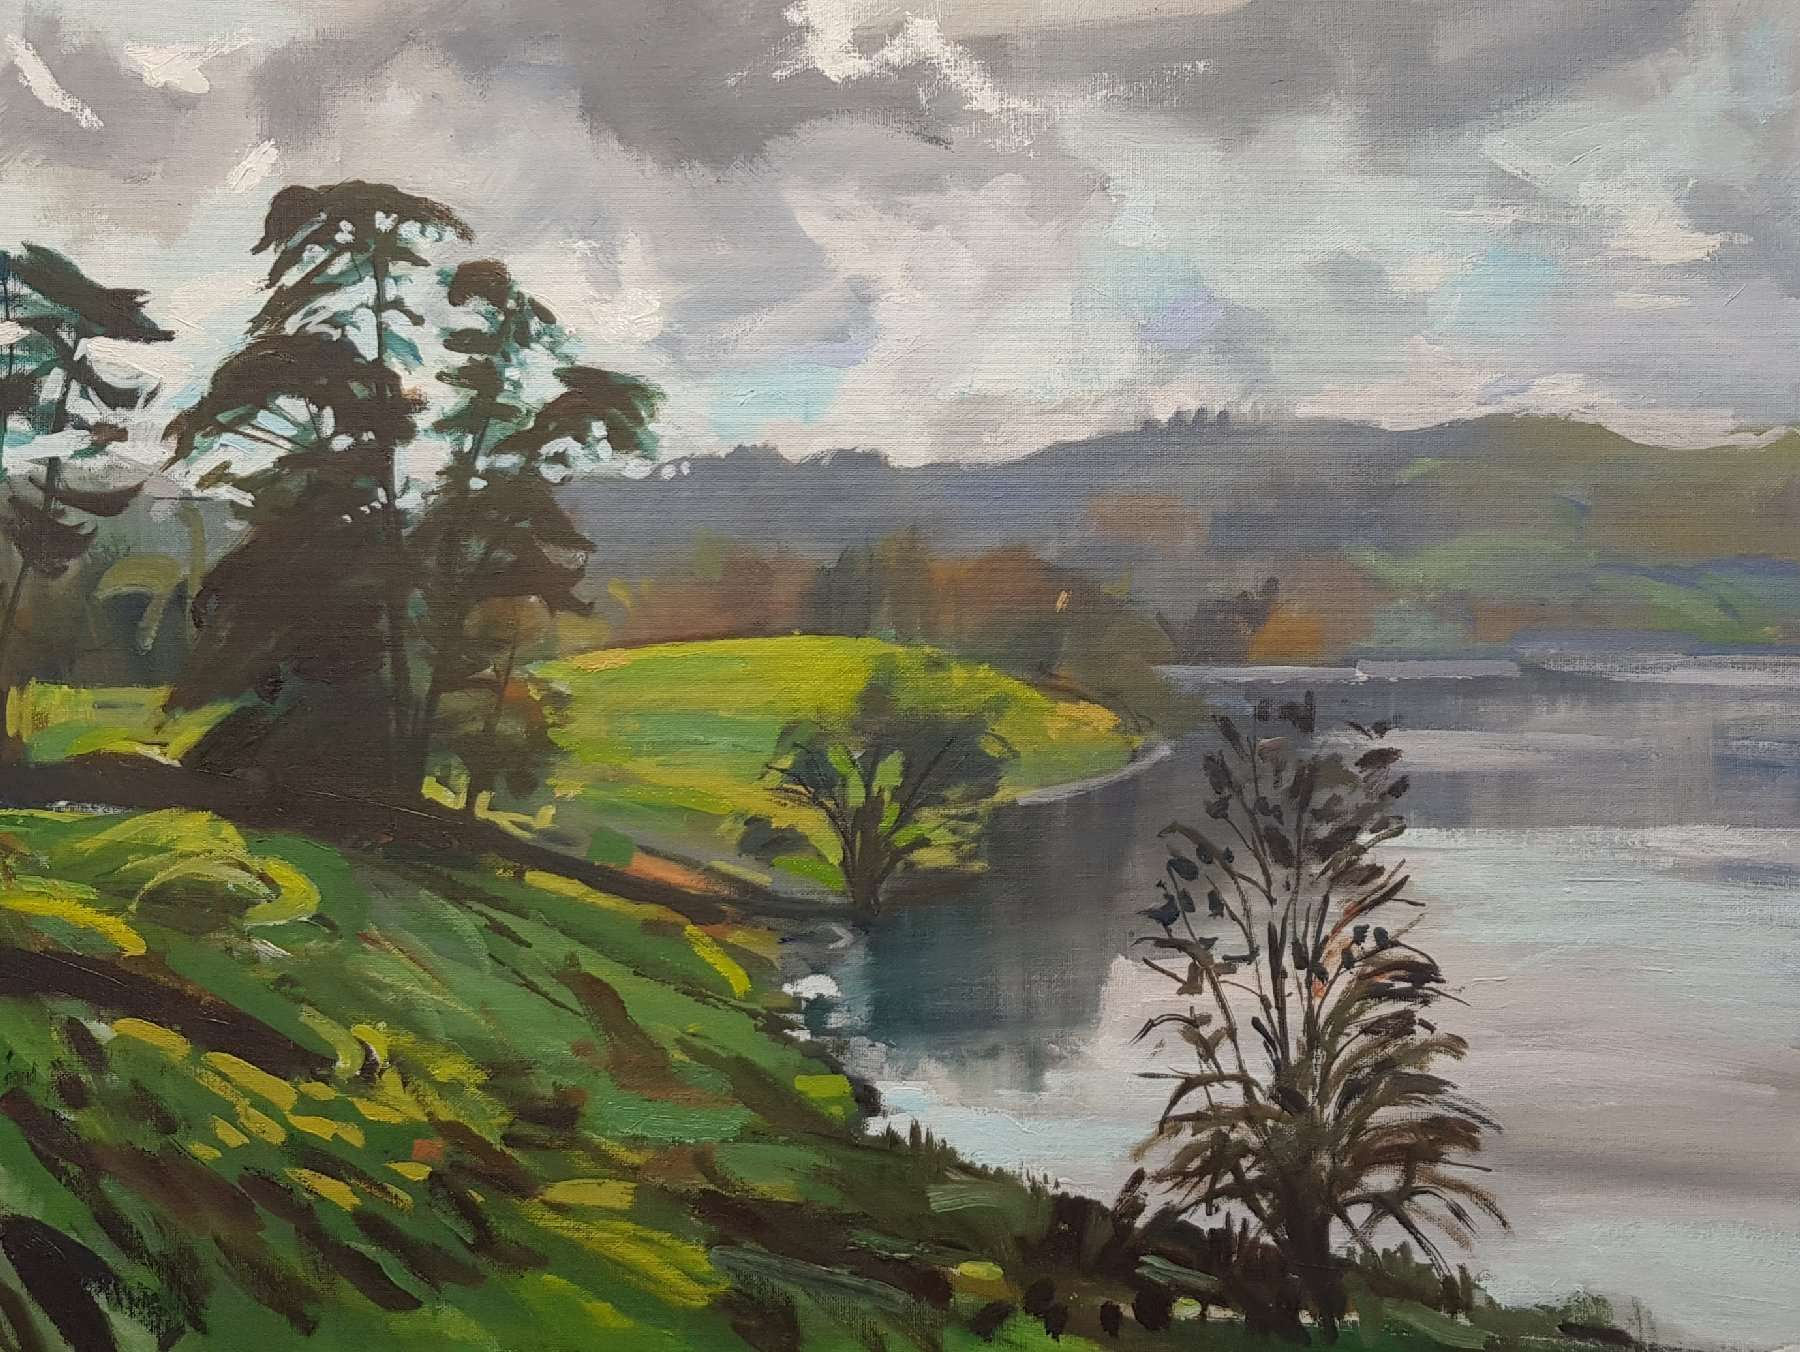 Loughrigg Tarn Painting by Lake District artist David Pott